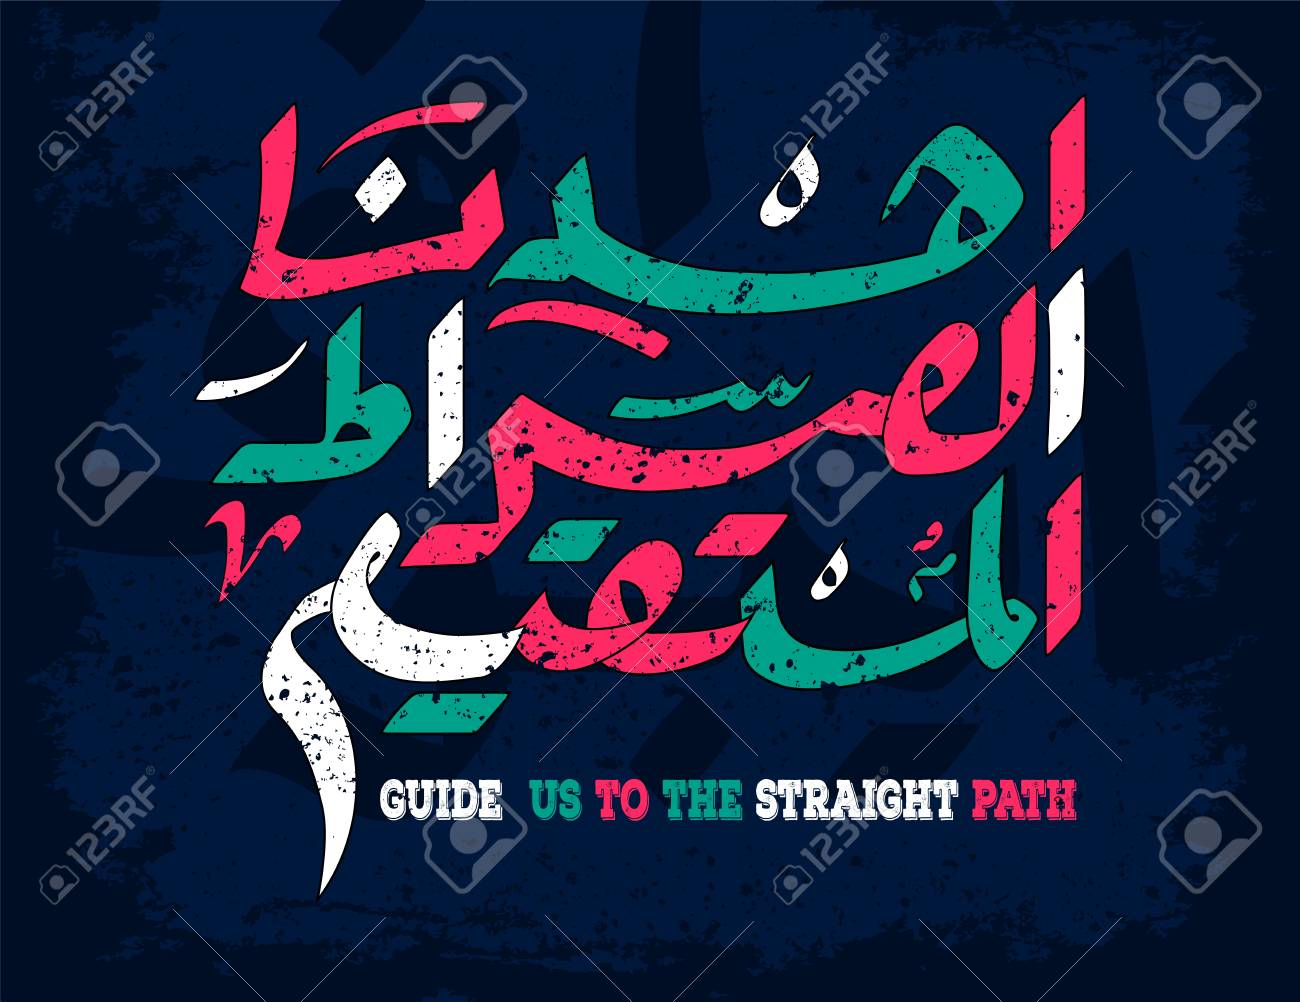 Islamic calligraphy from the korana guide us to the straight